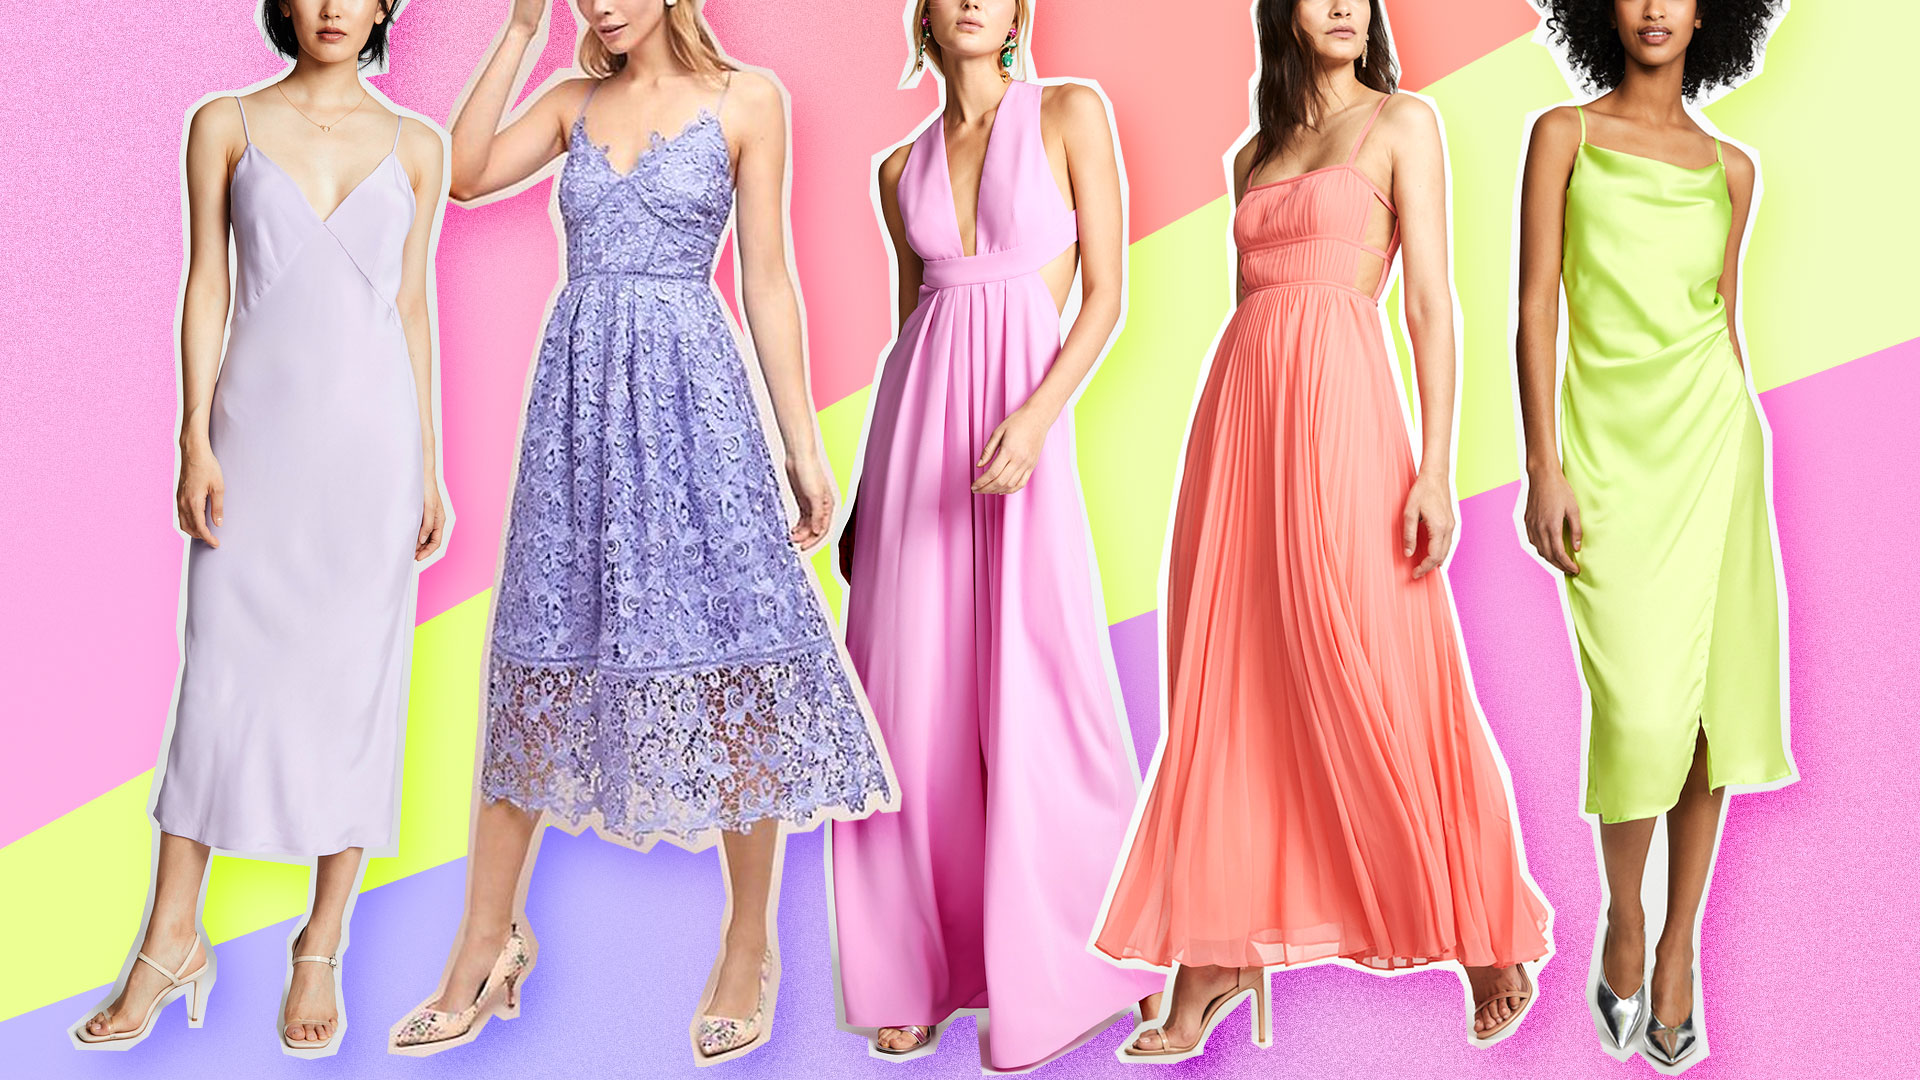 34 Pastel Bridesmaid Dresses Perfect for Warm-Weather Weddings